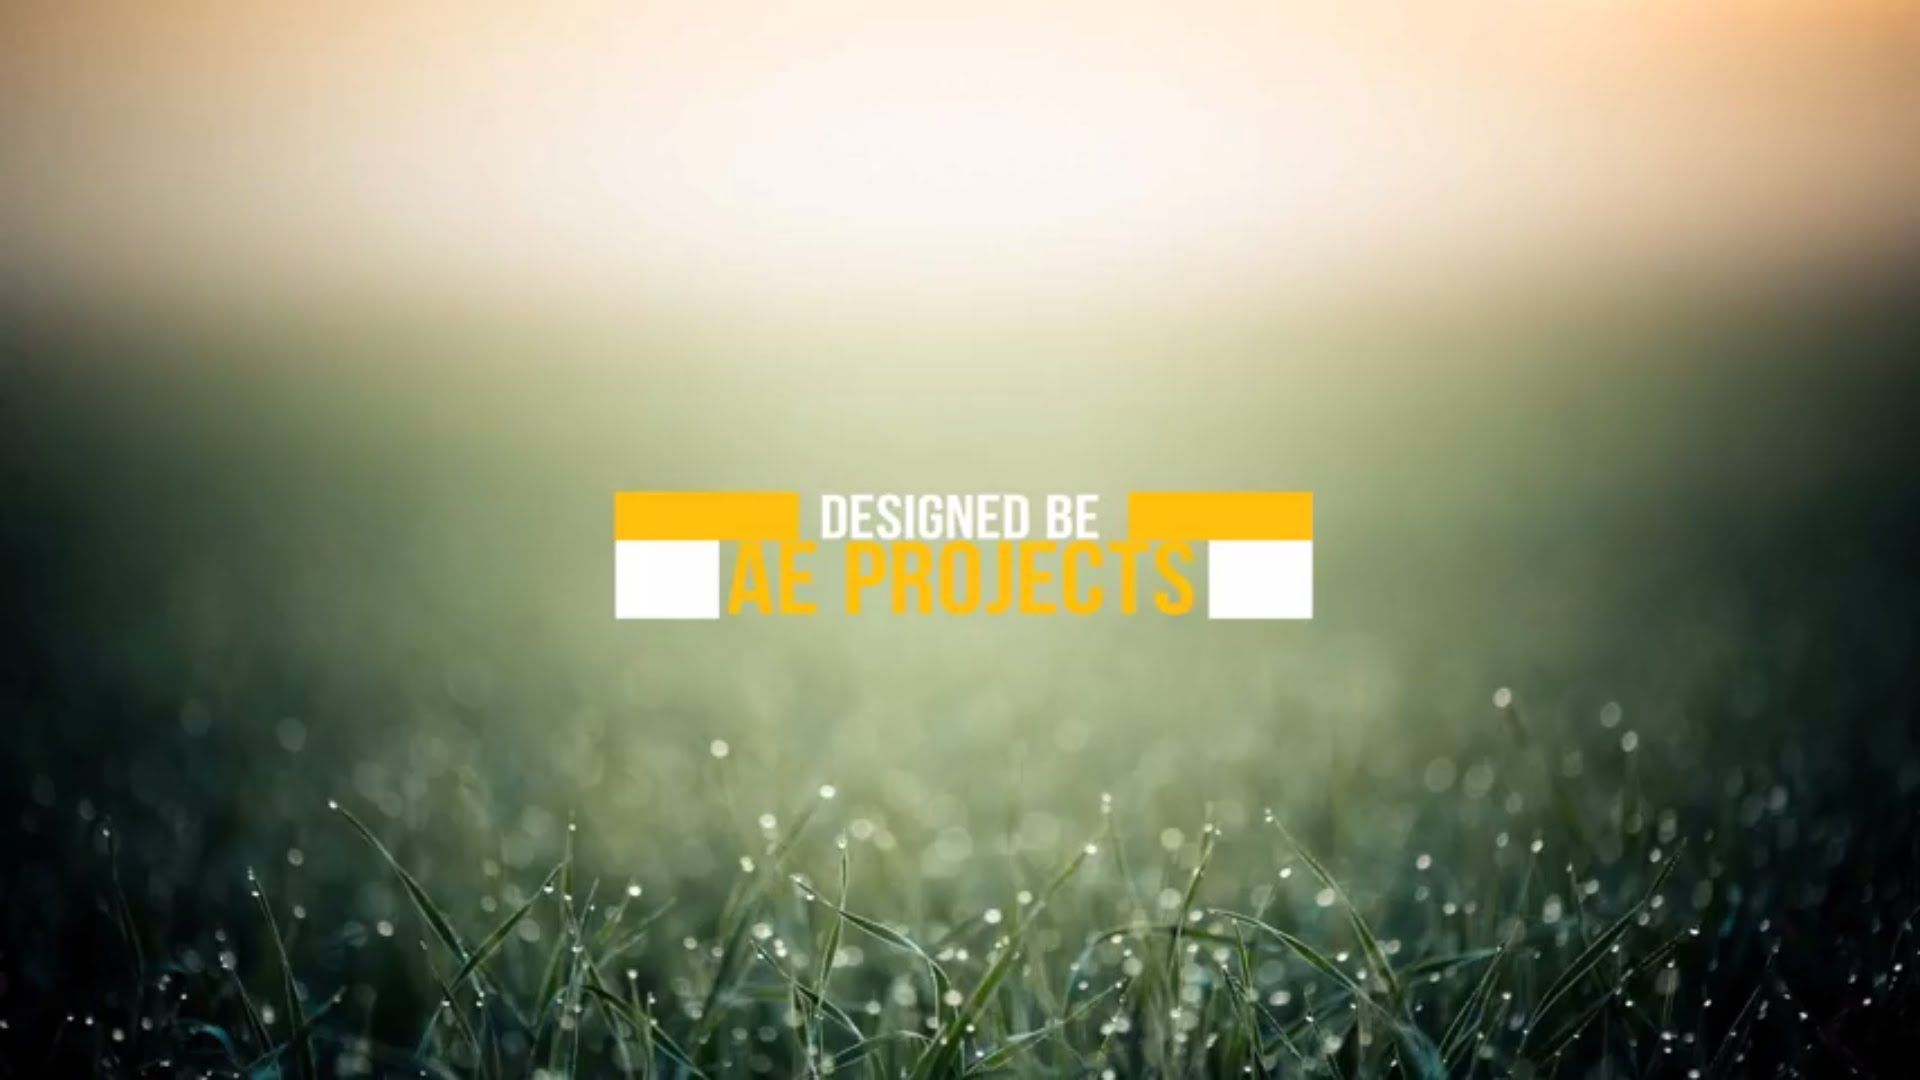 006 Dreaded Adobe After Effect Free Template High Definition  Templates Birthday Download Photo SlideshowFull